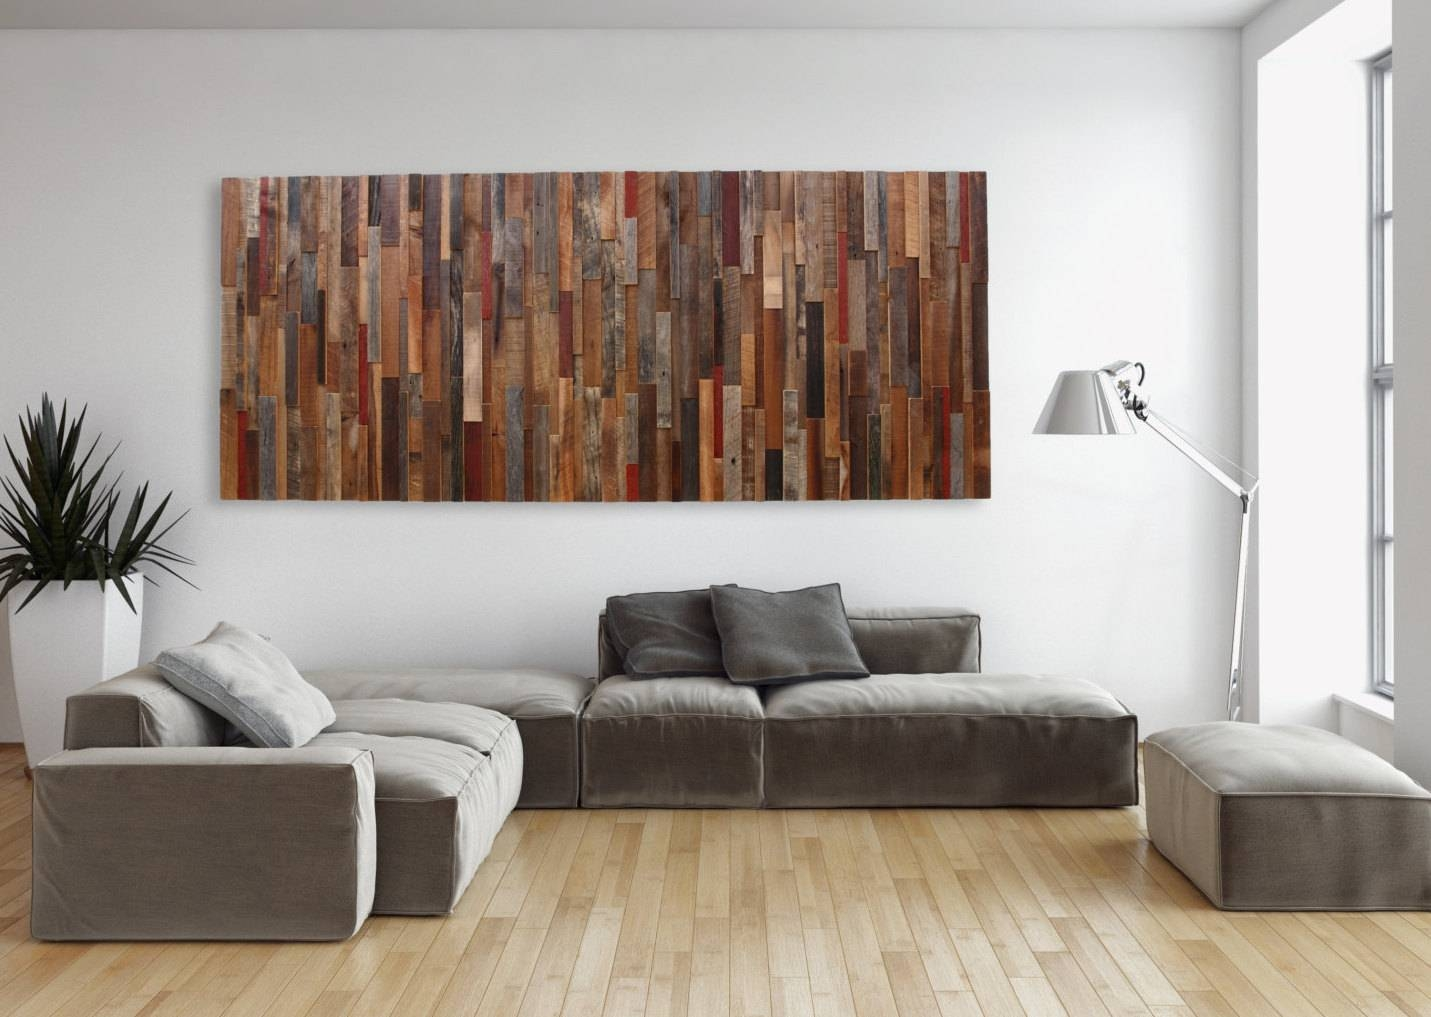 Displaying Gallery of Long Vertical Wall Art (View 6 of 20 Photos)